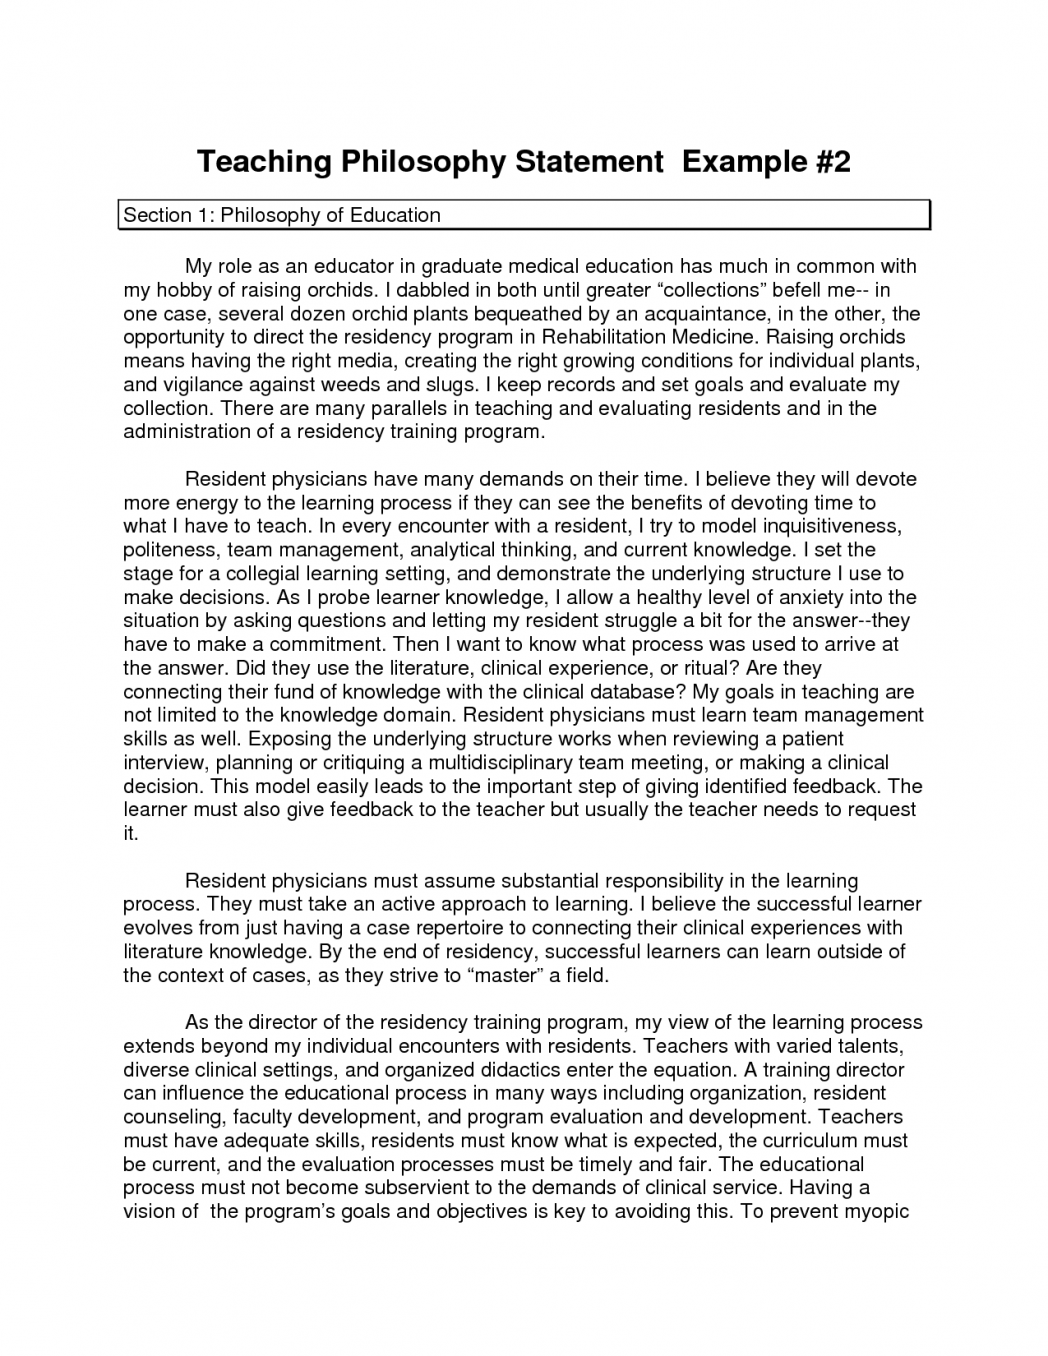 007 Exploratory Essay Example Definition Writing An Introduction Examples Statement Of Teaching Philosophy Mg5 Free Thesis Topics Research Remarkable Outline Full